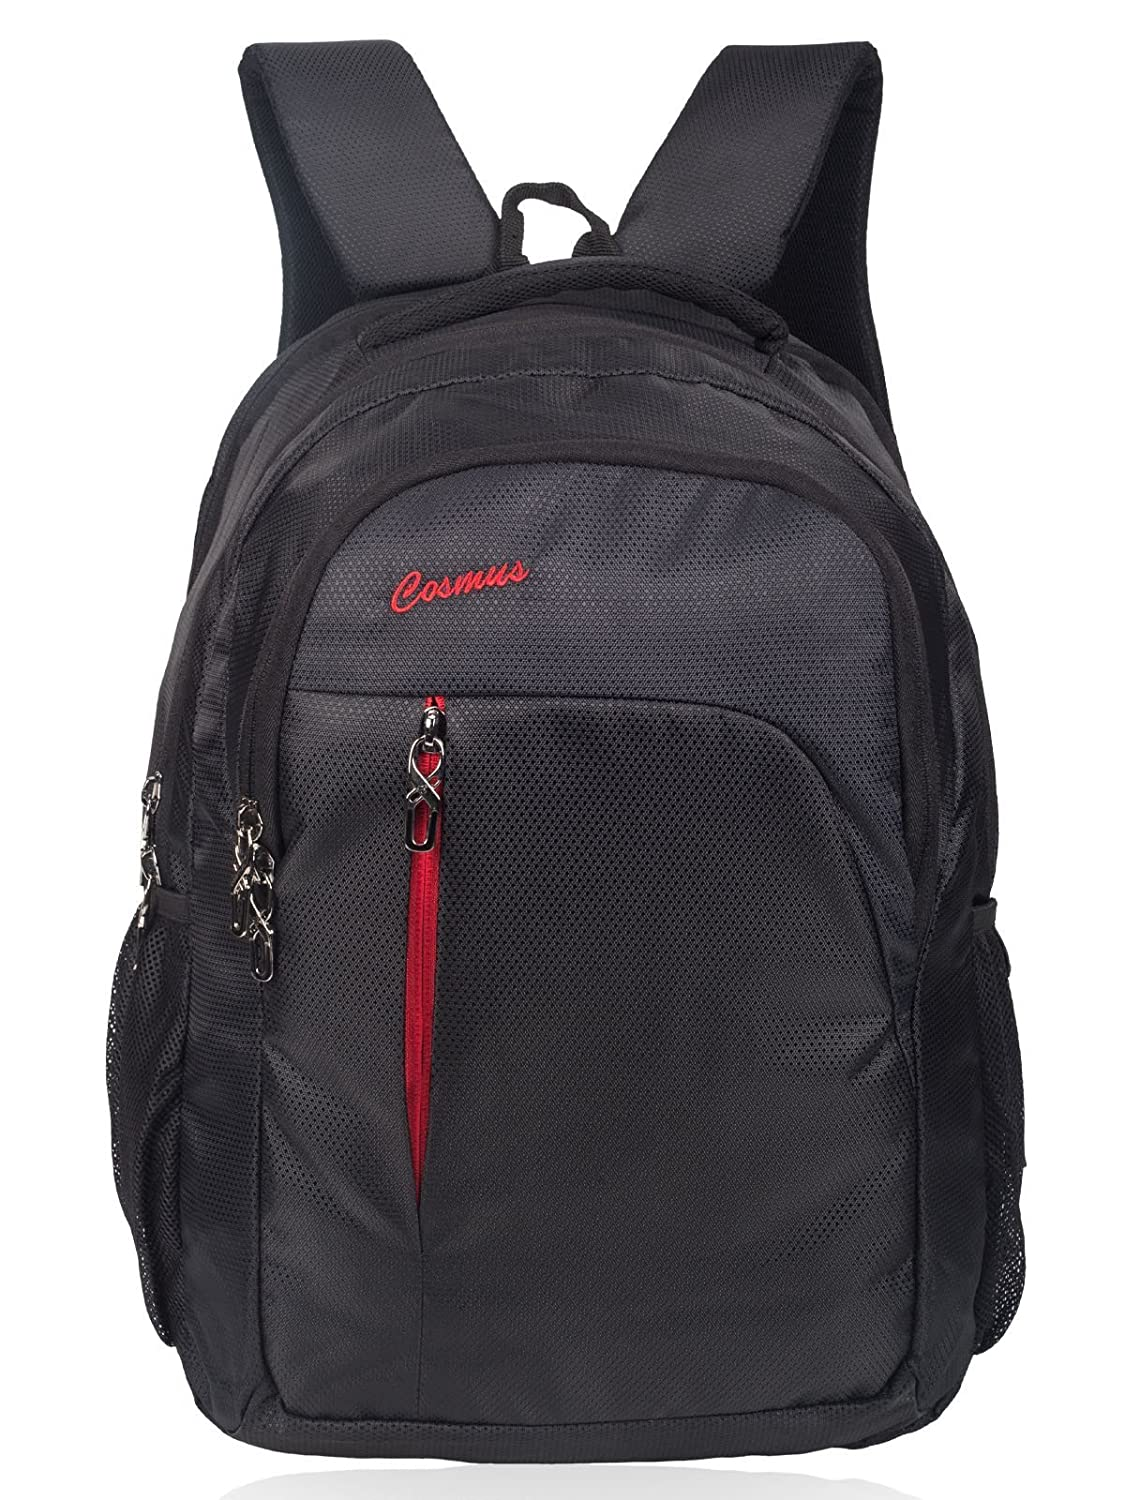 Cosmus Linux 39 litres Black & Red Laptop Backpack